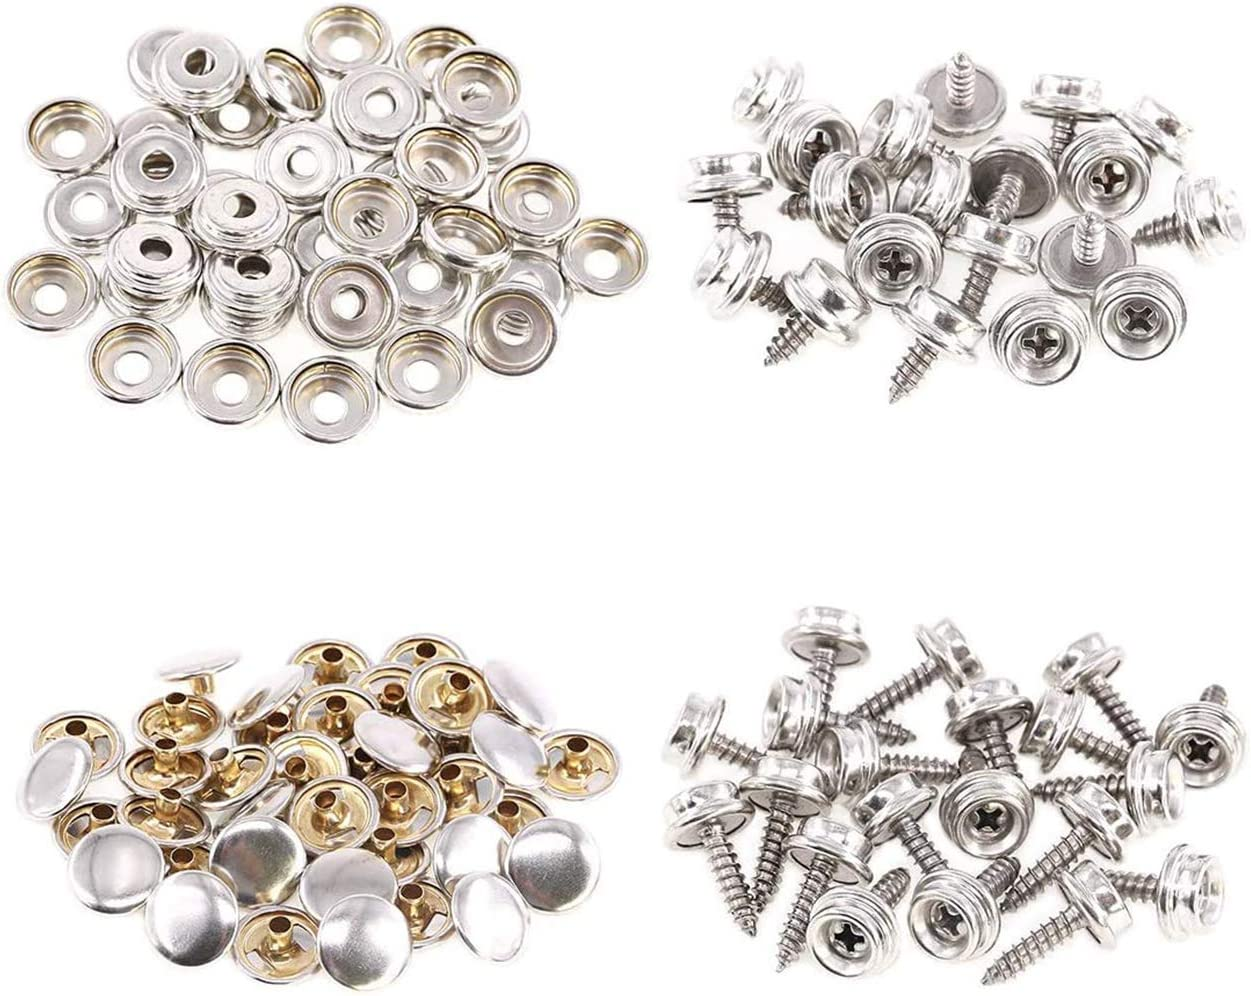 BetterJonny 60 Sets Stainless Steel Snap Fasteners Press Stud Kit with 3 Pieces Setting Tool in Storage Box for Boat Cover Furniture 180pcs Canvas Snaps Kit